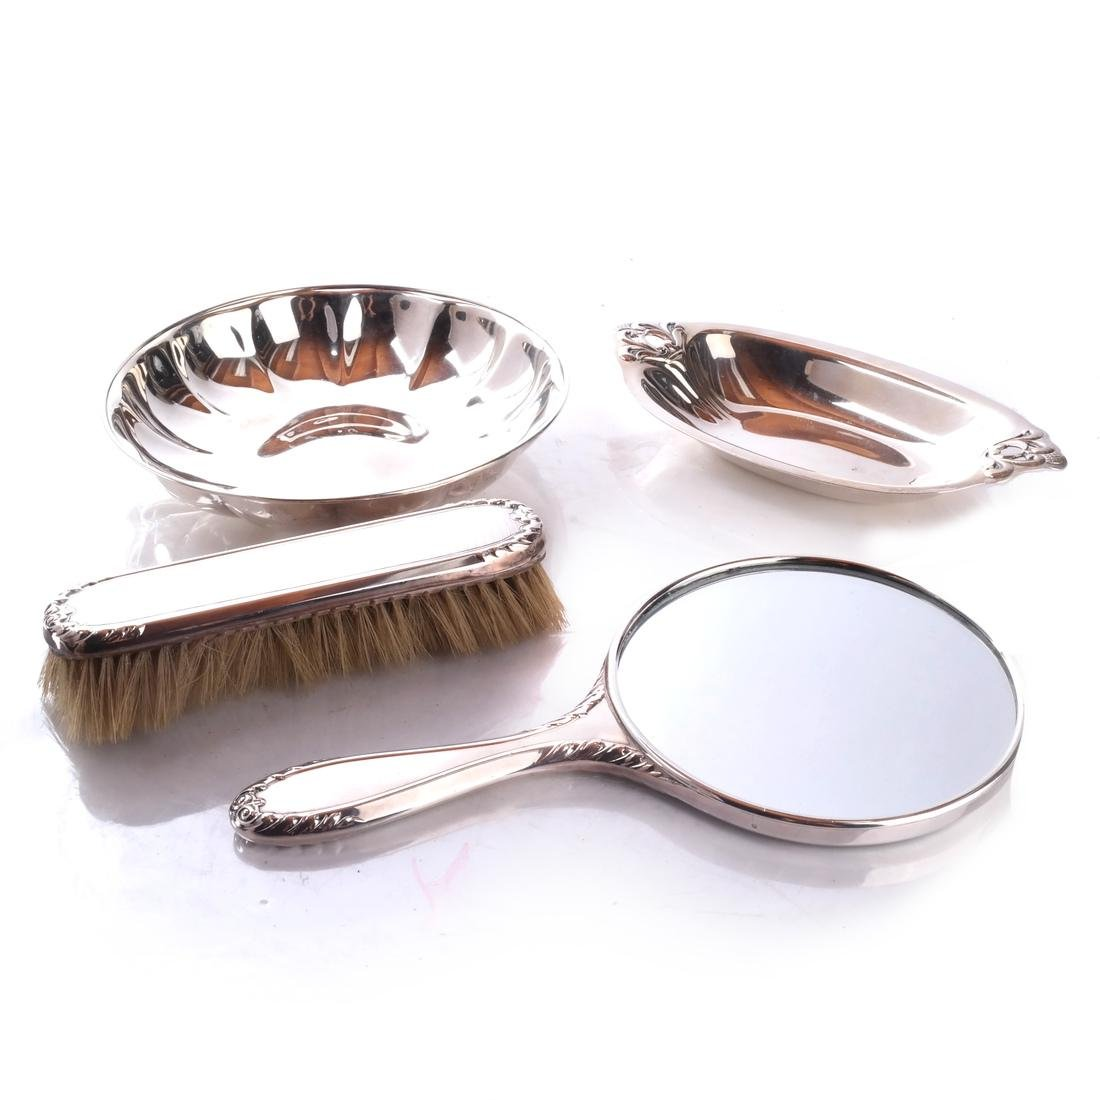 Royal Danish Silver Serving Dish, Others